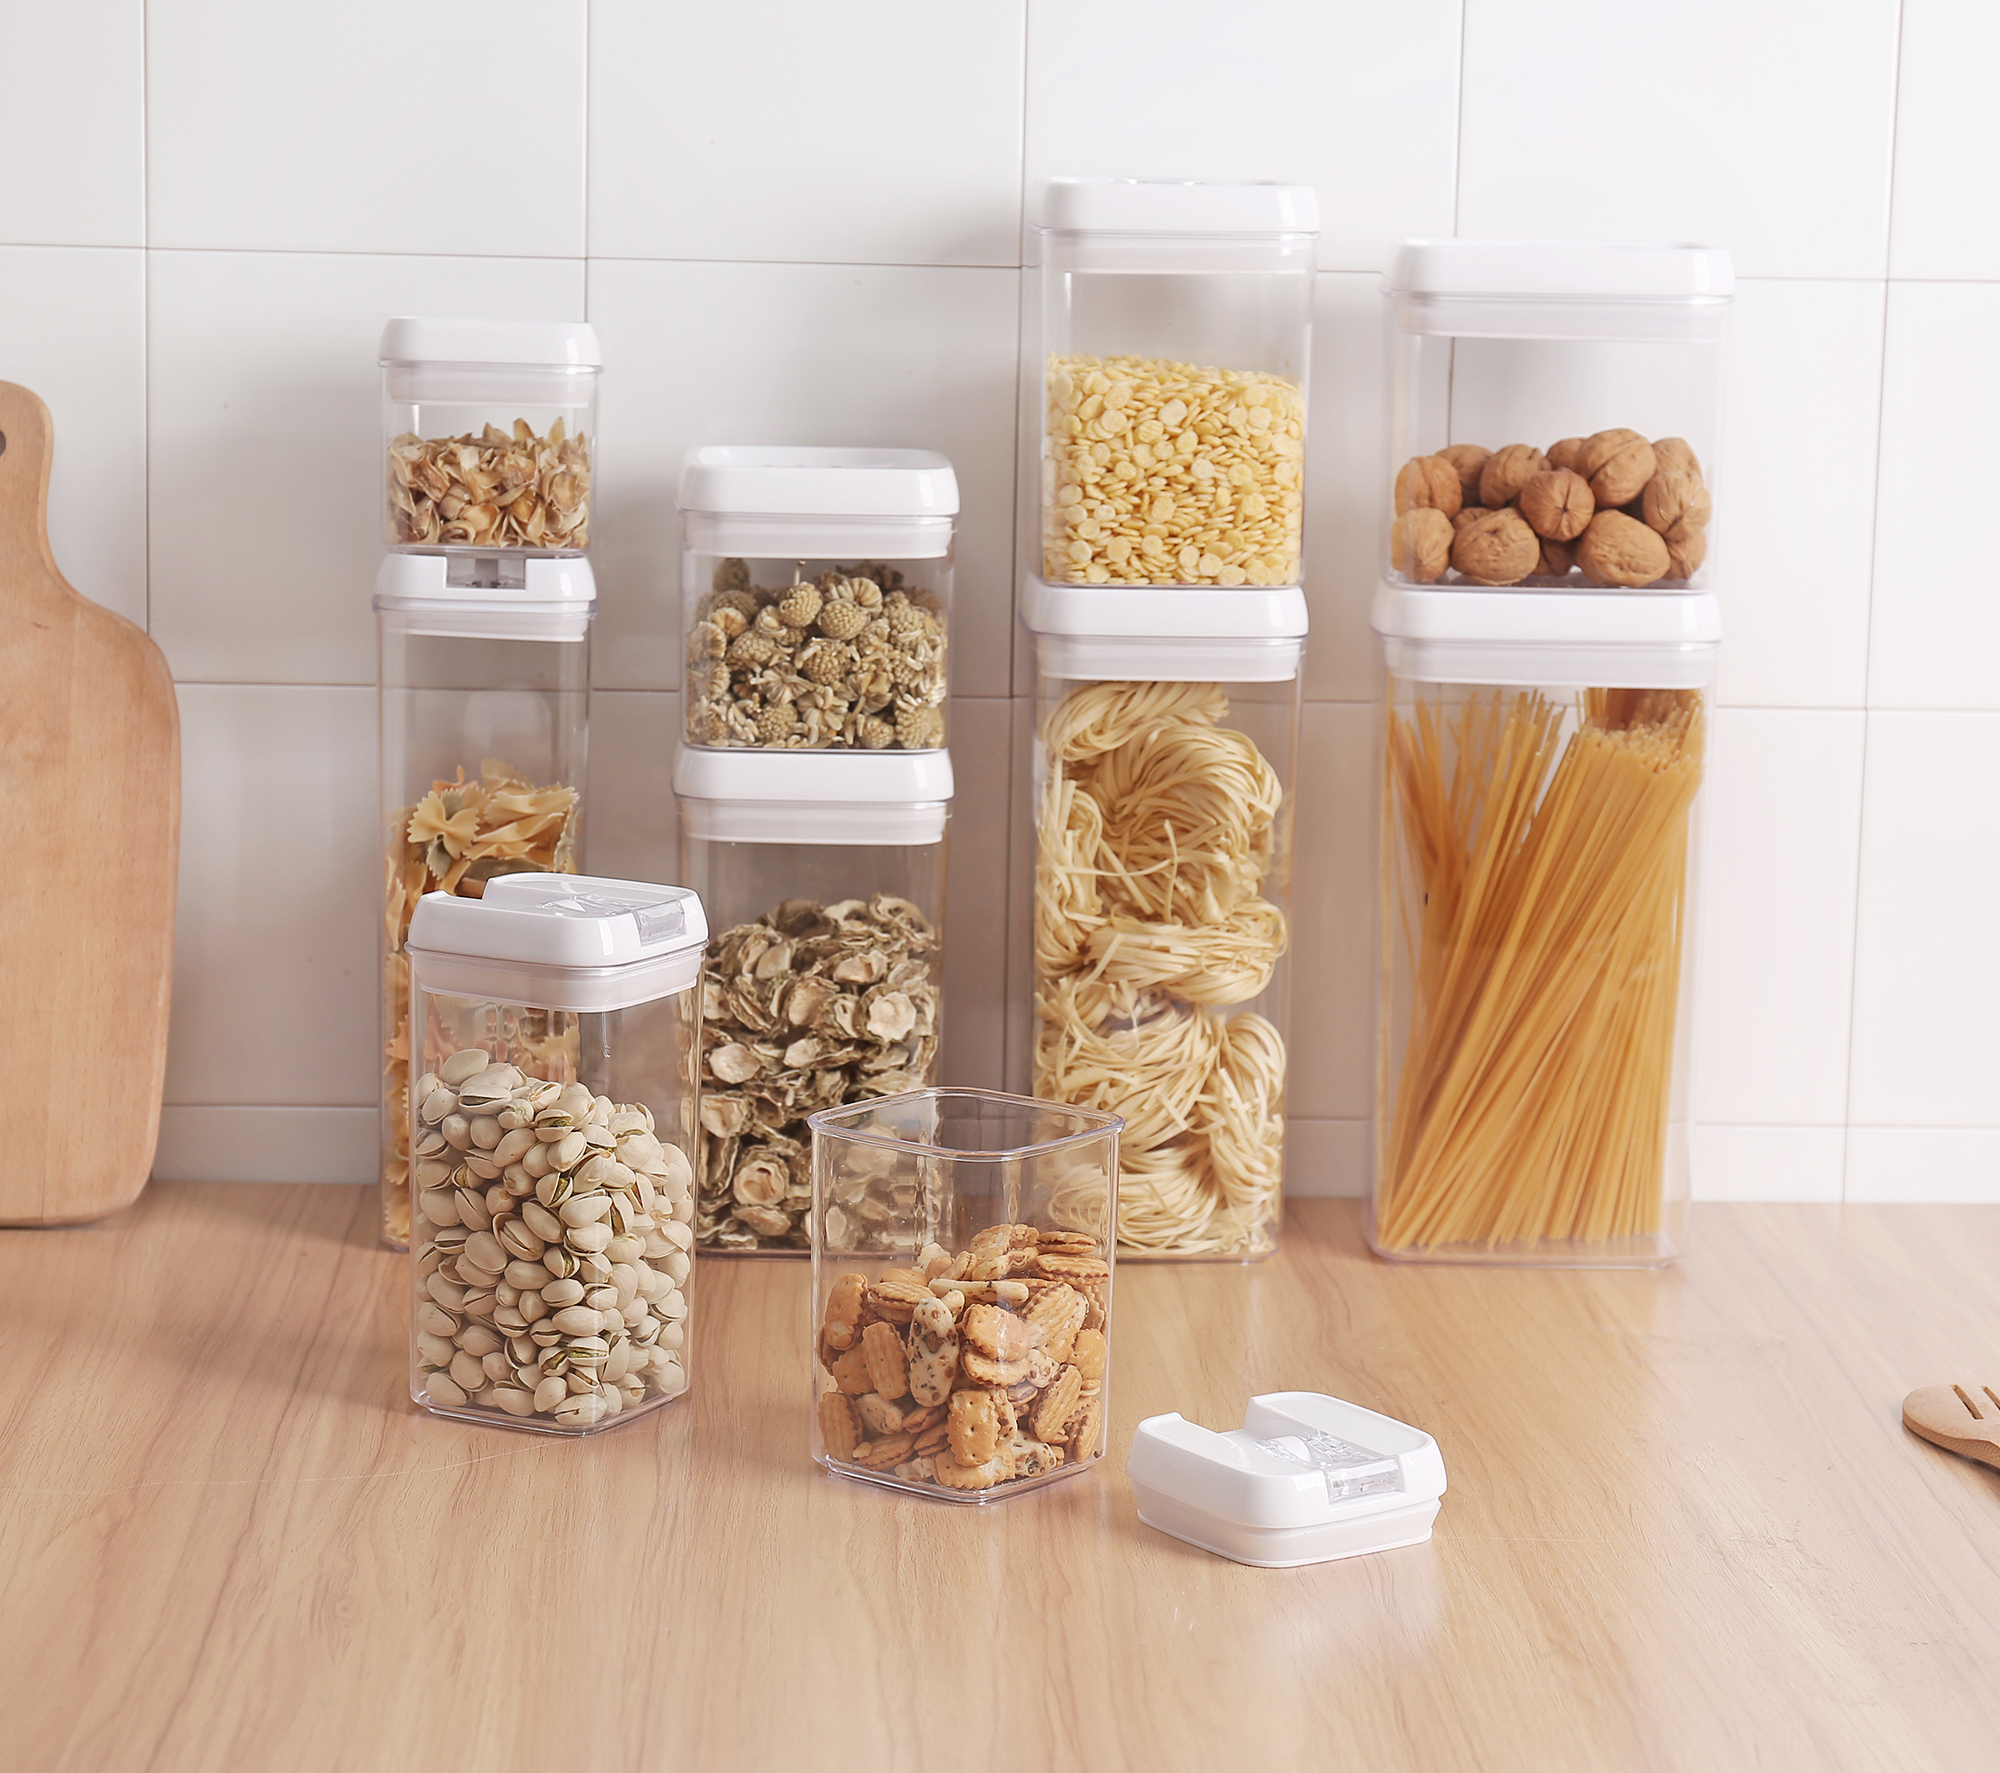 Container Airtight with Lids made by Durable BPA-free Plastic for Keeping Food Dry & Fresh, 2.3L